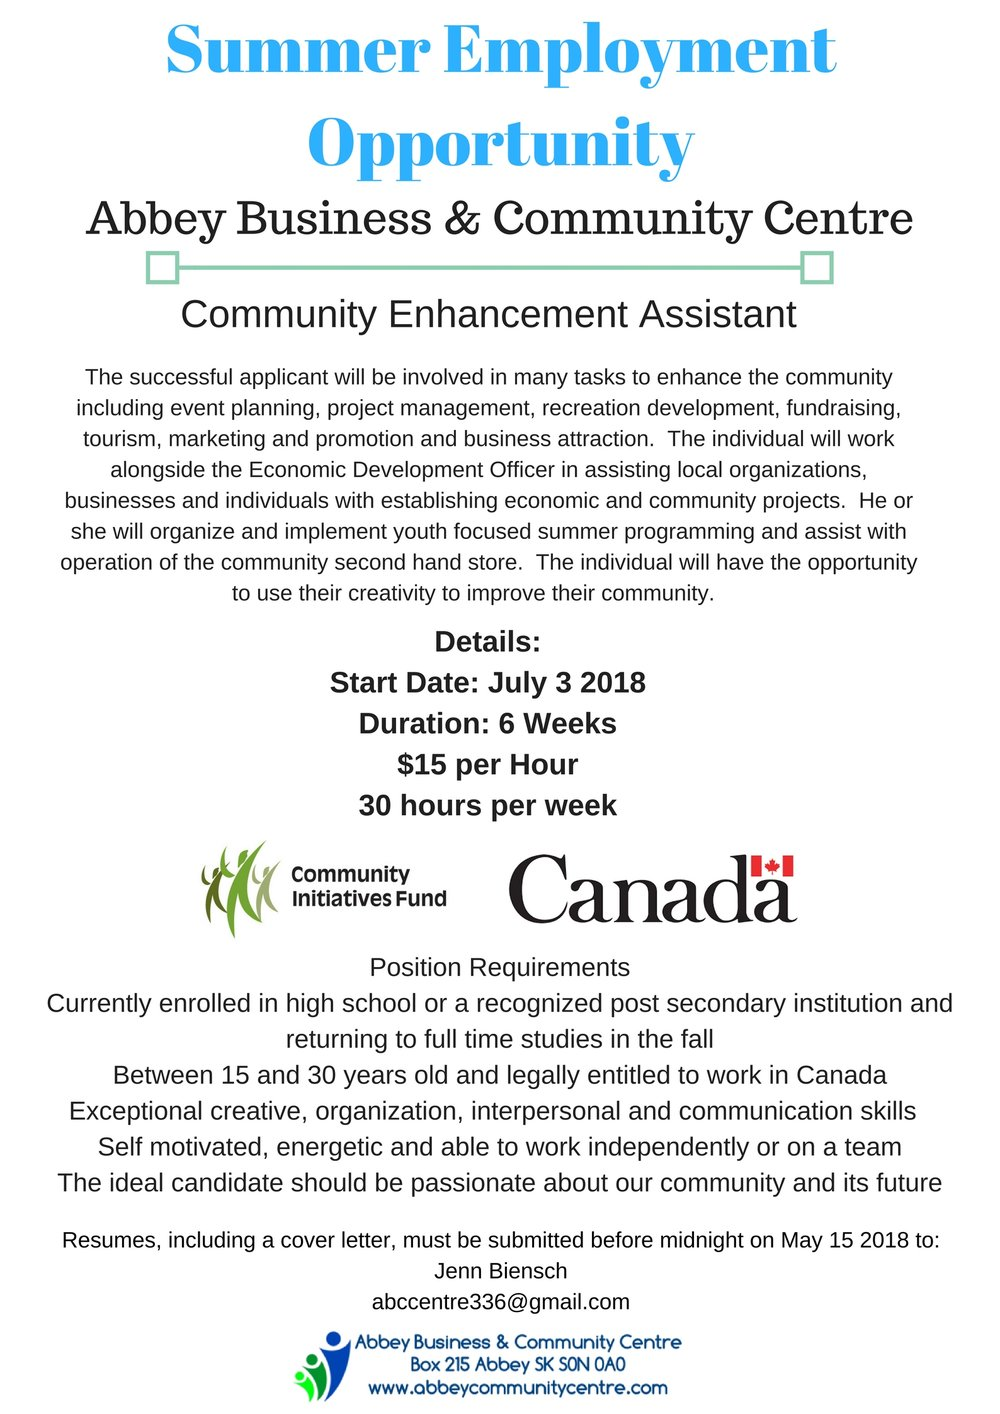 Summer Employment Opportunity- Abbey SKVillage of Abbey and Abbey Business & Community Centre.jpg